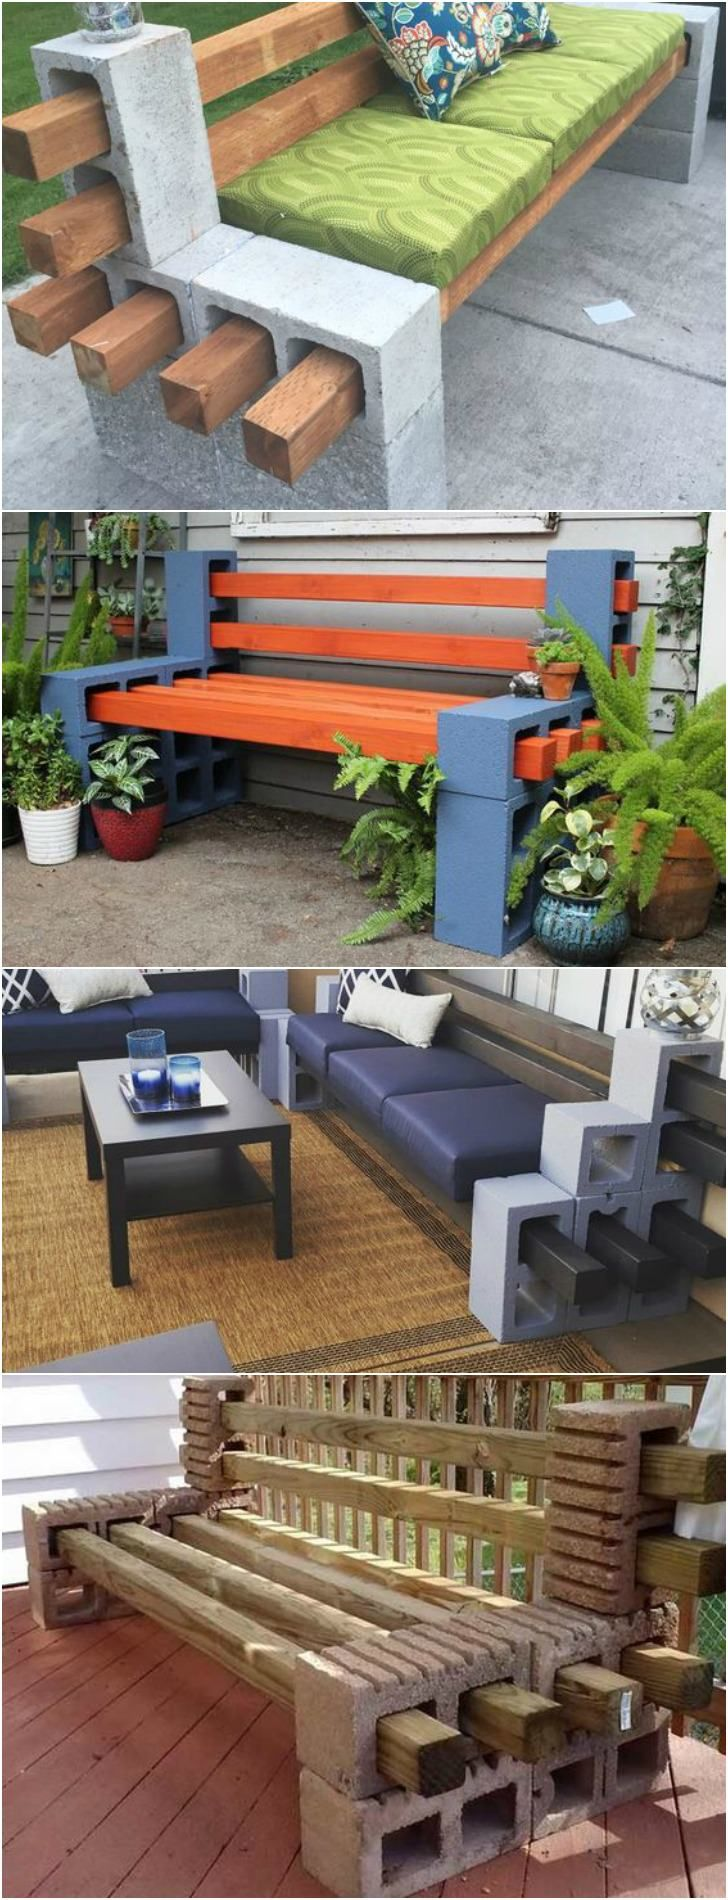 how to make a bench from cinder blocks 10 amazing ideas to inspire you